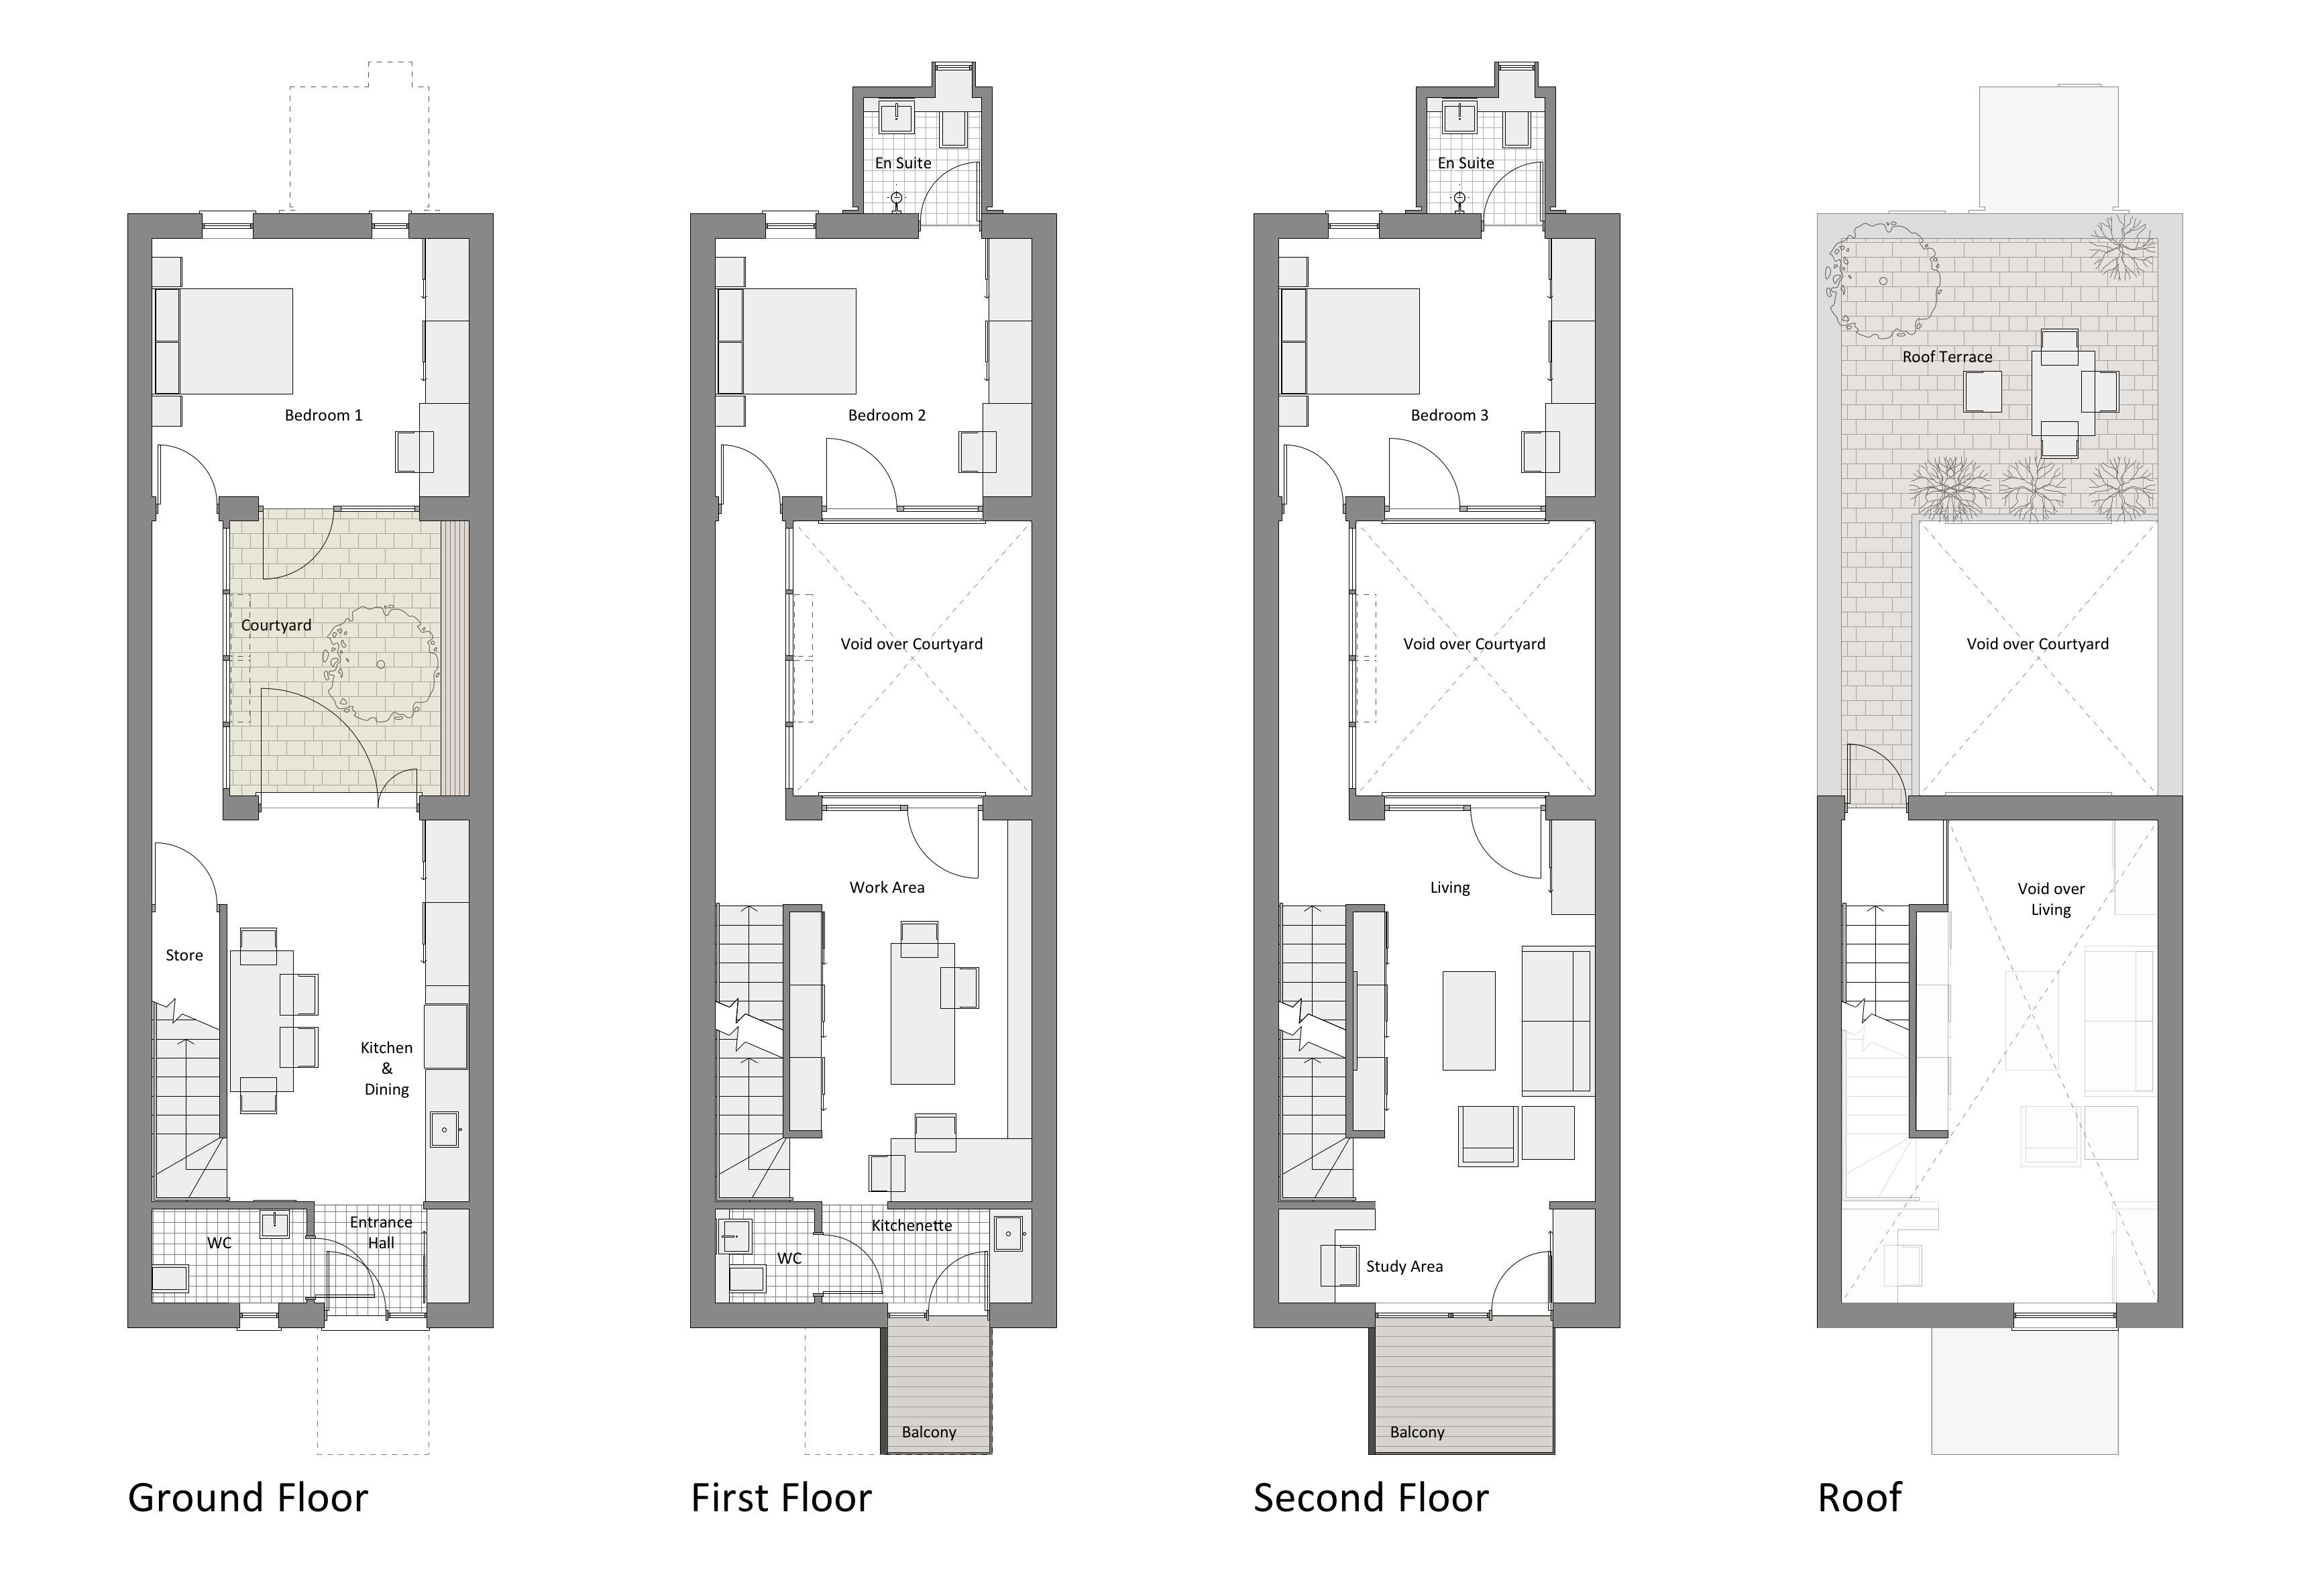 Courtyard/Row House | Marc Medland | Architect in 2020 ... on duplex floor plans, row house kitchen ideas, row house windows, farmhouse floor plans, row house design, row house garage, historic row house plans, single family residence floor plans, row house plans narrow lots, simple floor plans, row house architectural drawings, pud floor plans, villa floor plans, saltbox floor plans, row house history, one story bungalow floor plans, row houses in conway ar, houseboat floor plans, row house communities, brownstone floor plans,